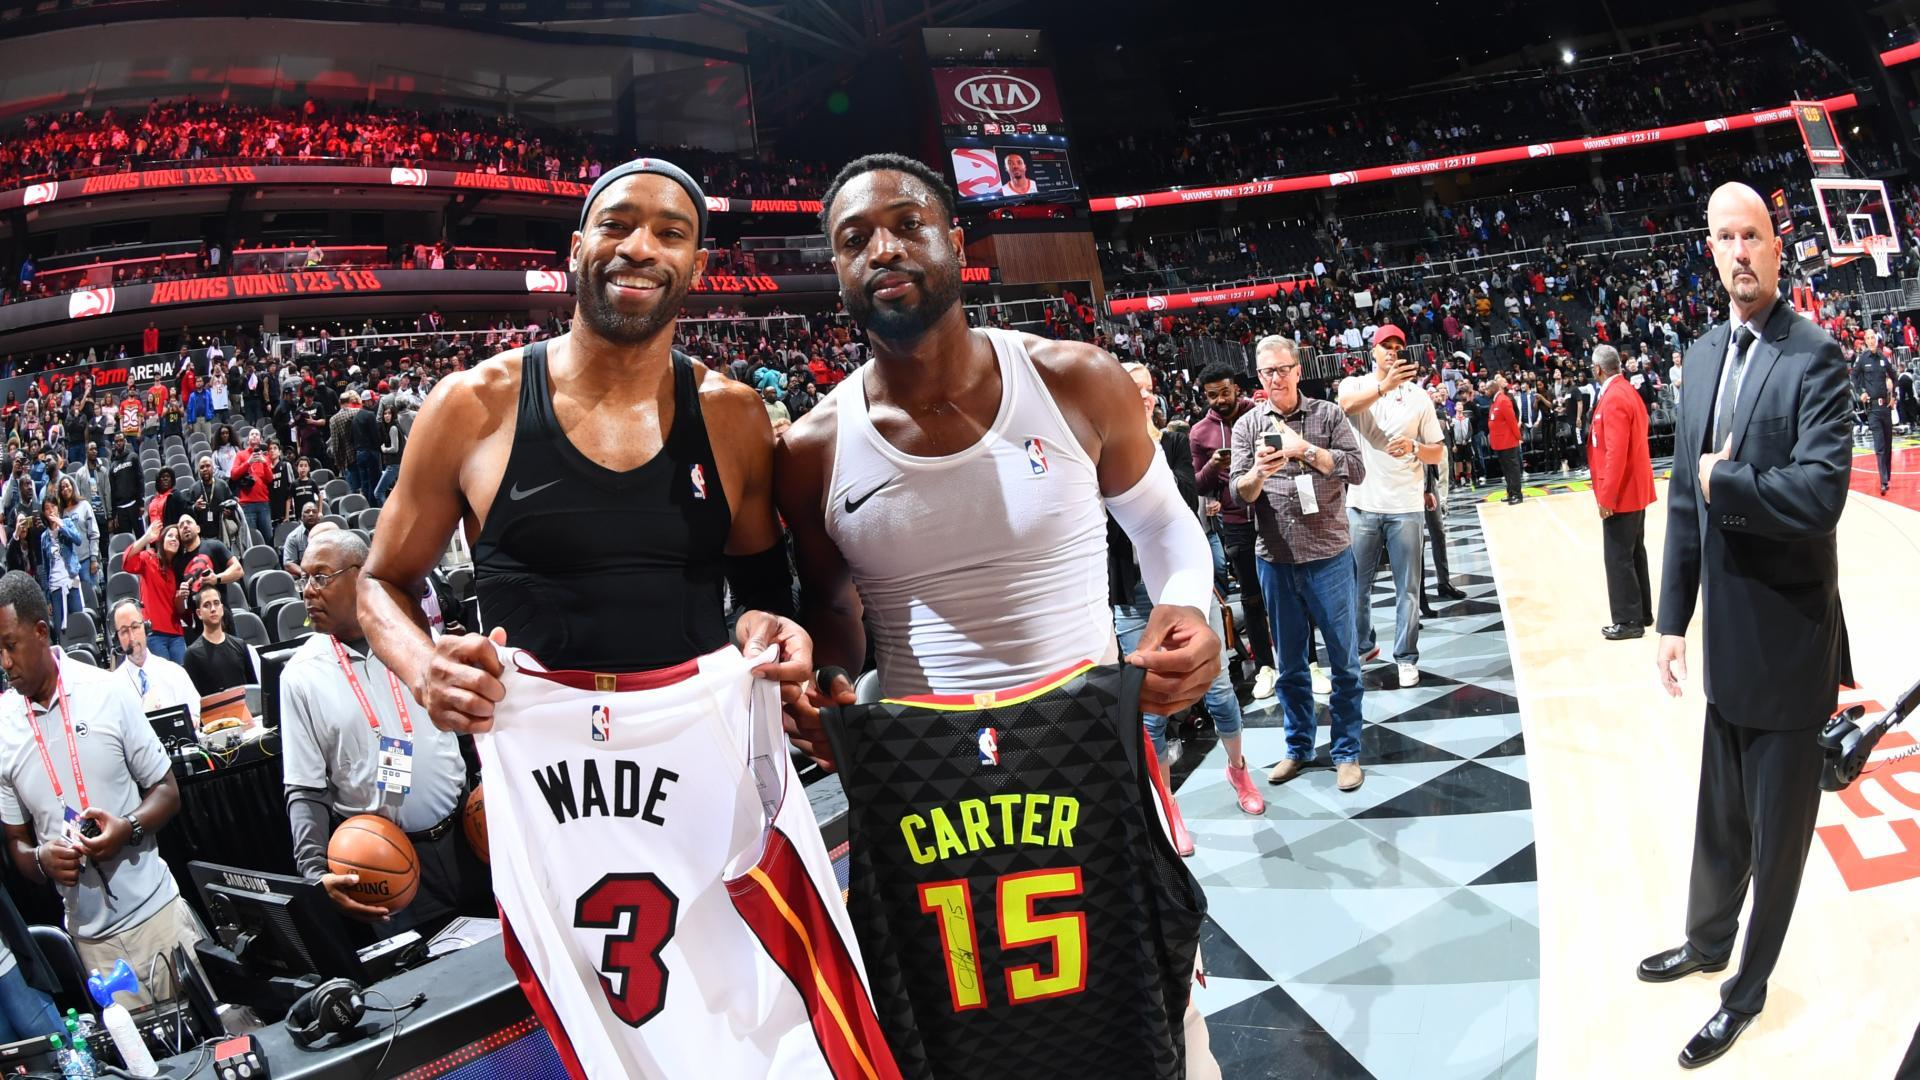 Dwyane Wade's career ends with triple-double in front of LeBron James